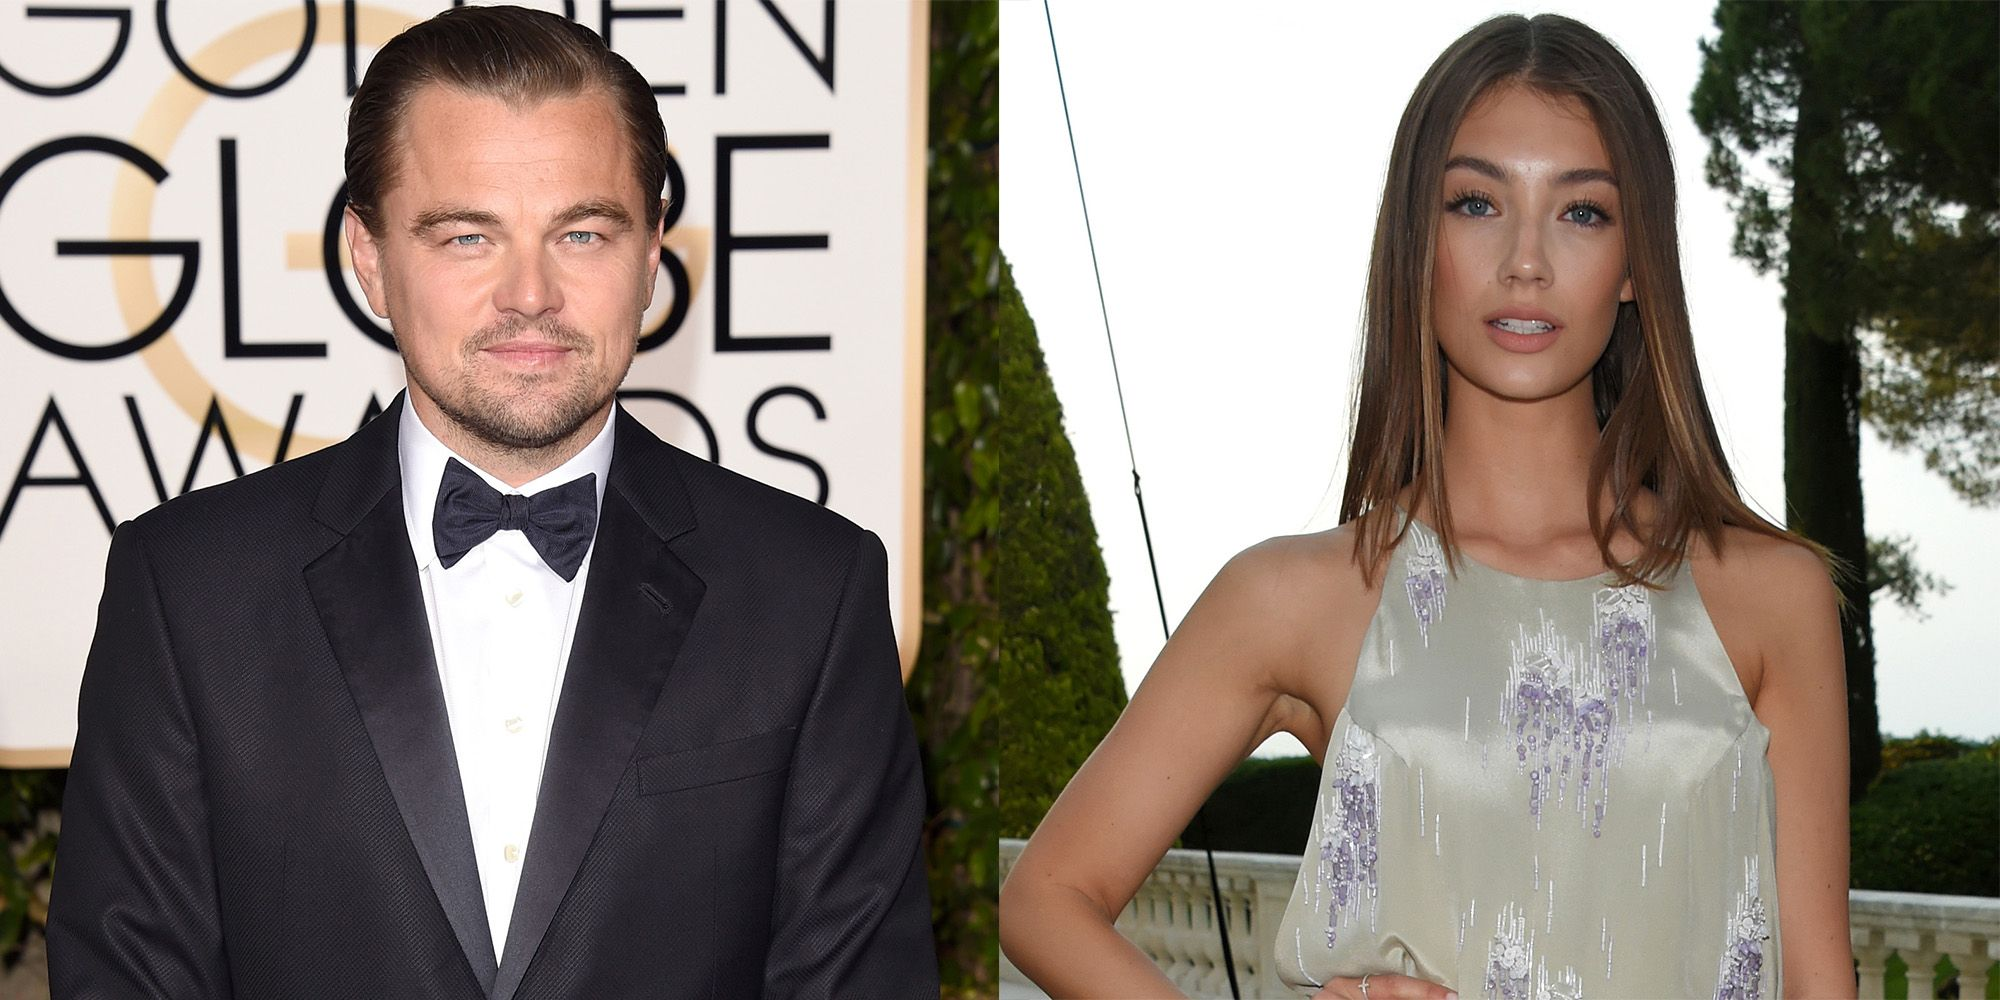 Leo DiCaprio's girl is new MS model